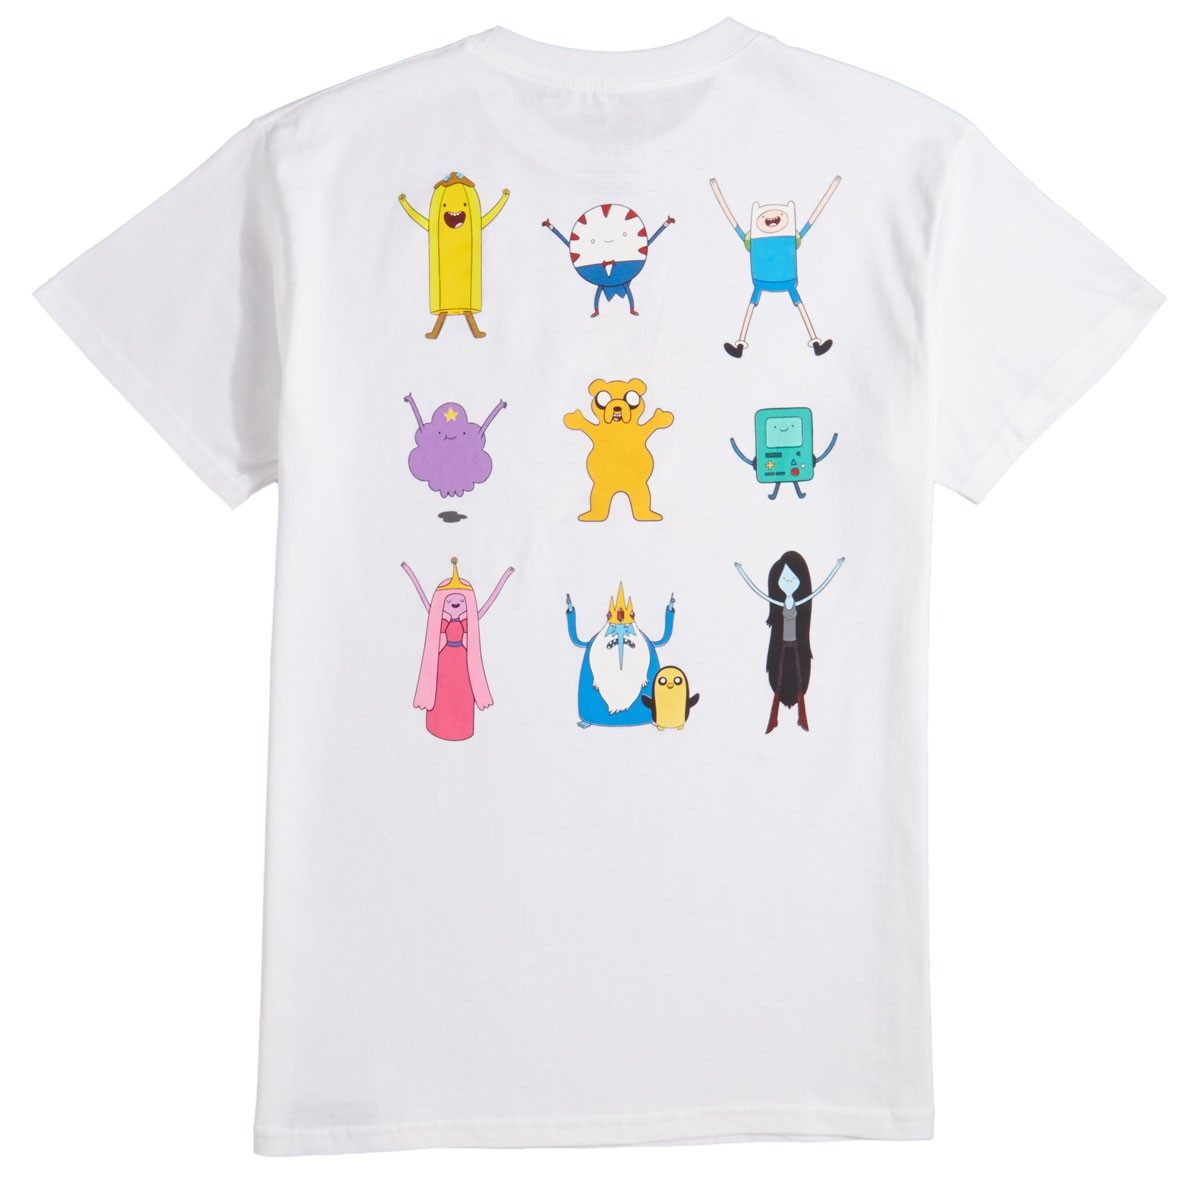 Grizzly X Adventure Time Like Your Brain And Stuff T Shirt White